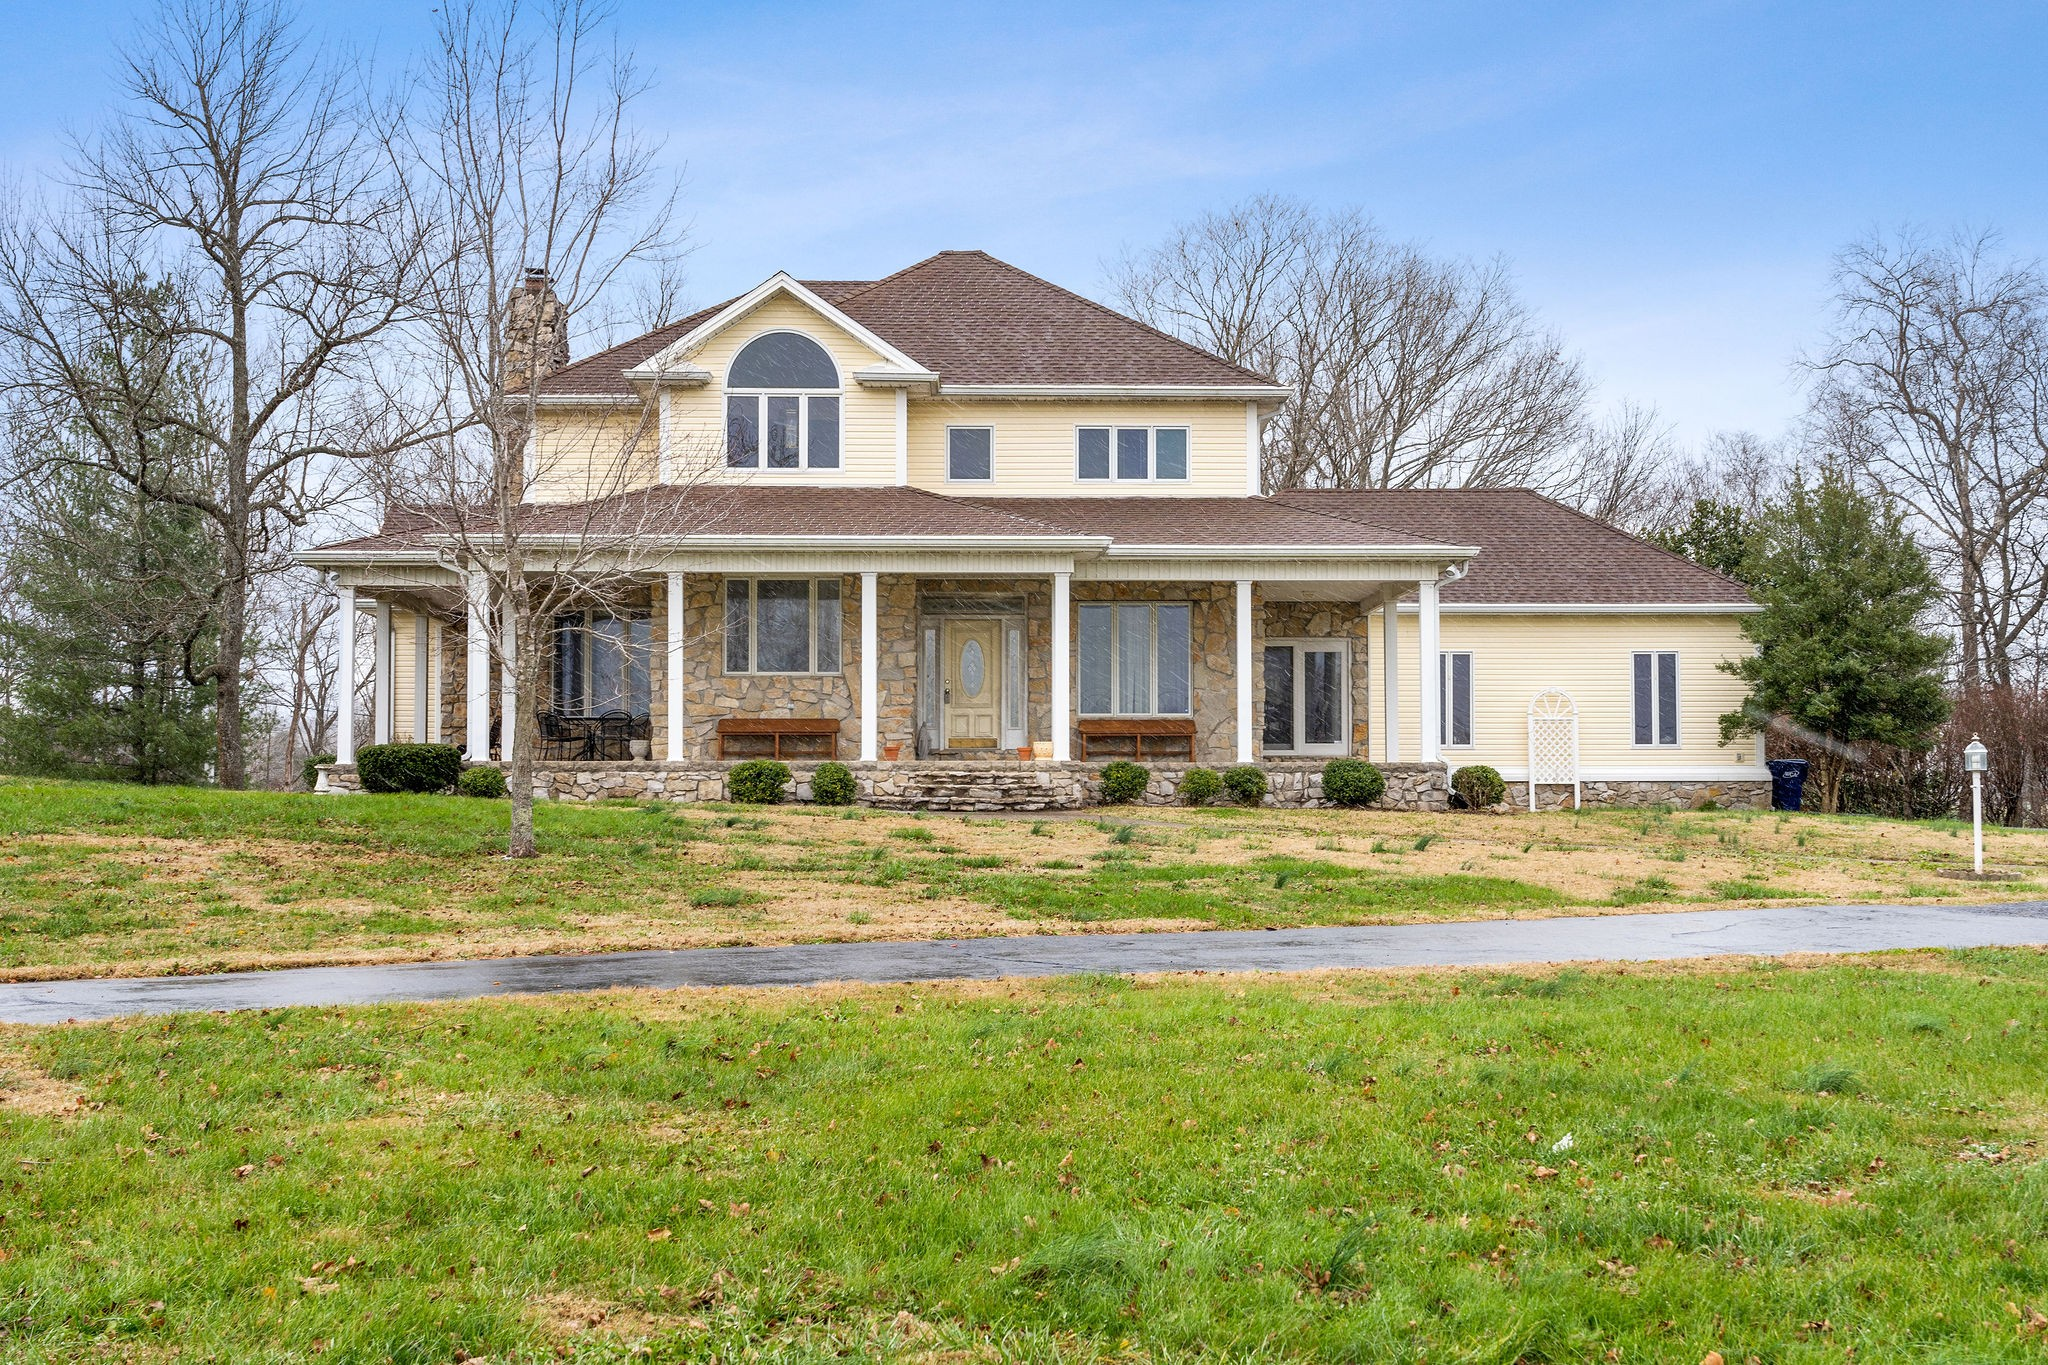 3730 Harmony Grove Property Photo - Hopkinsville, KY real estate listing